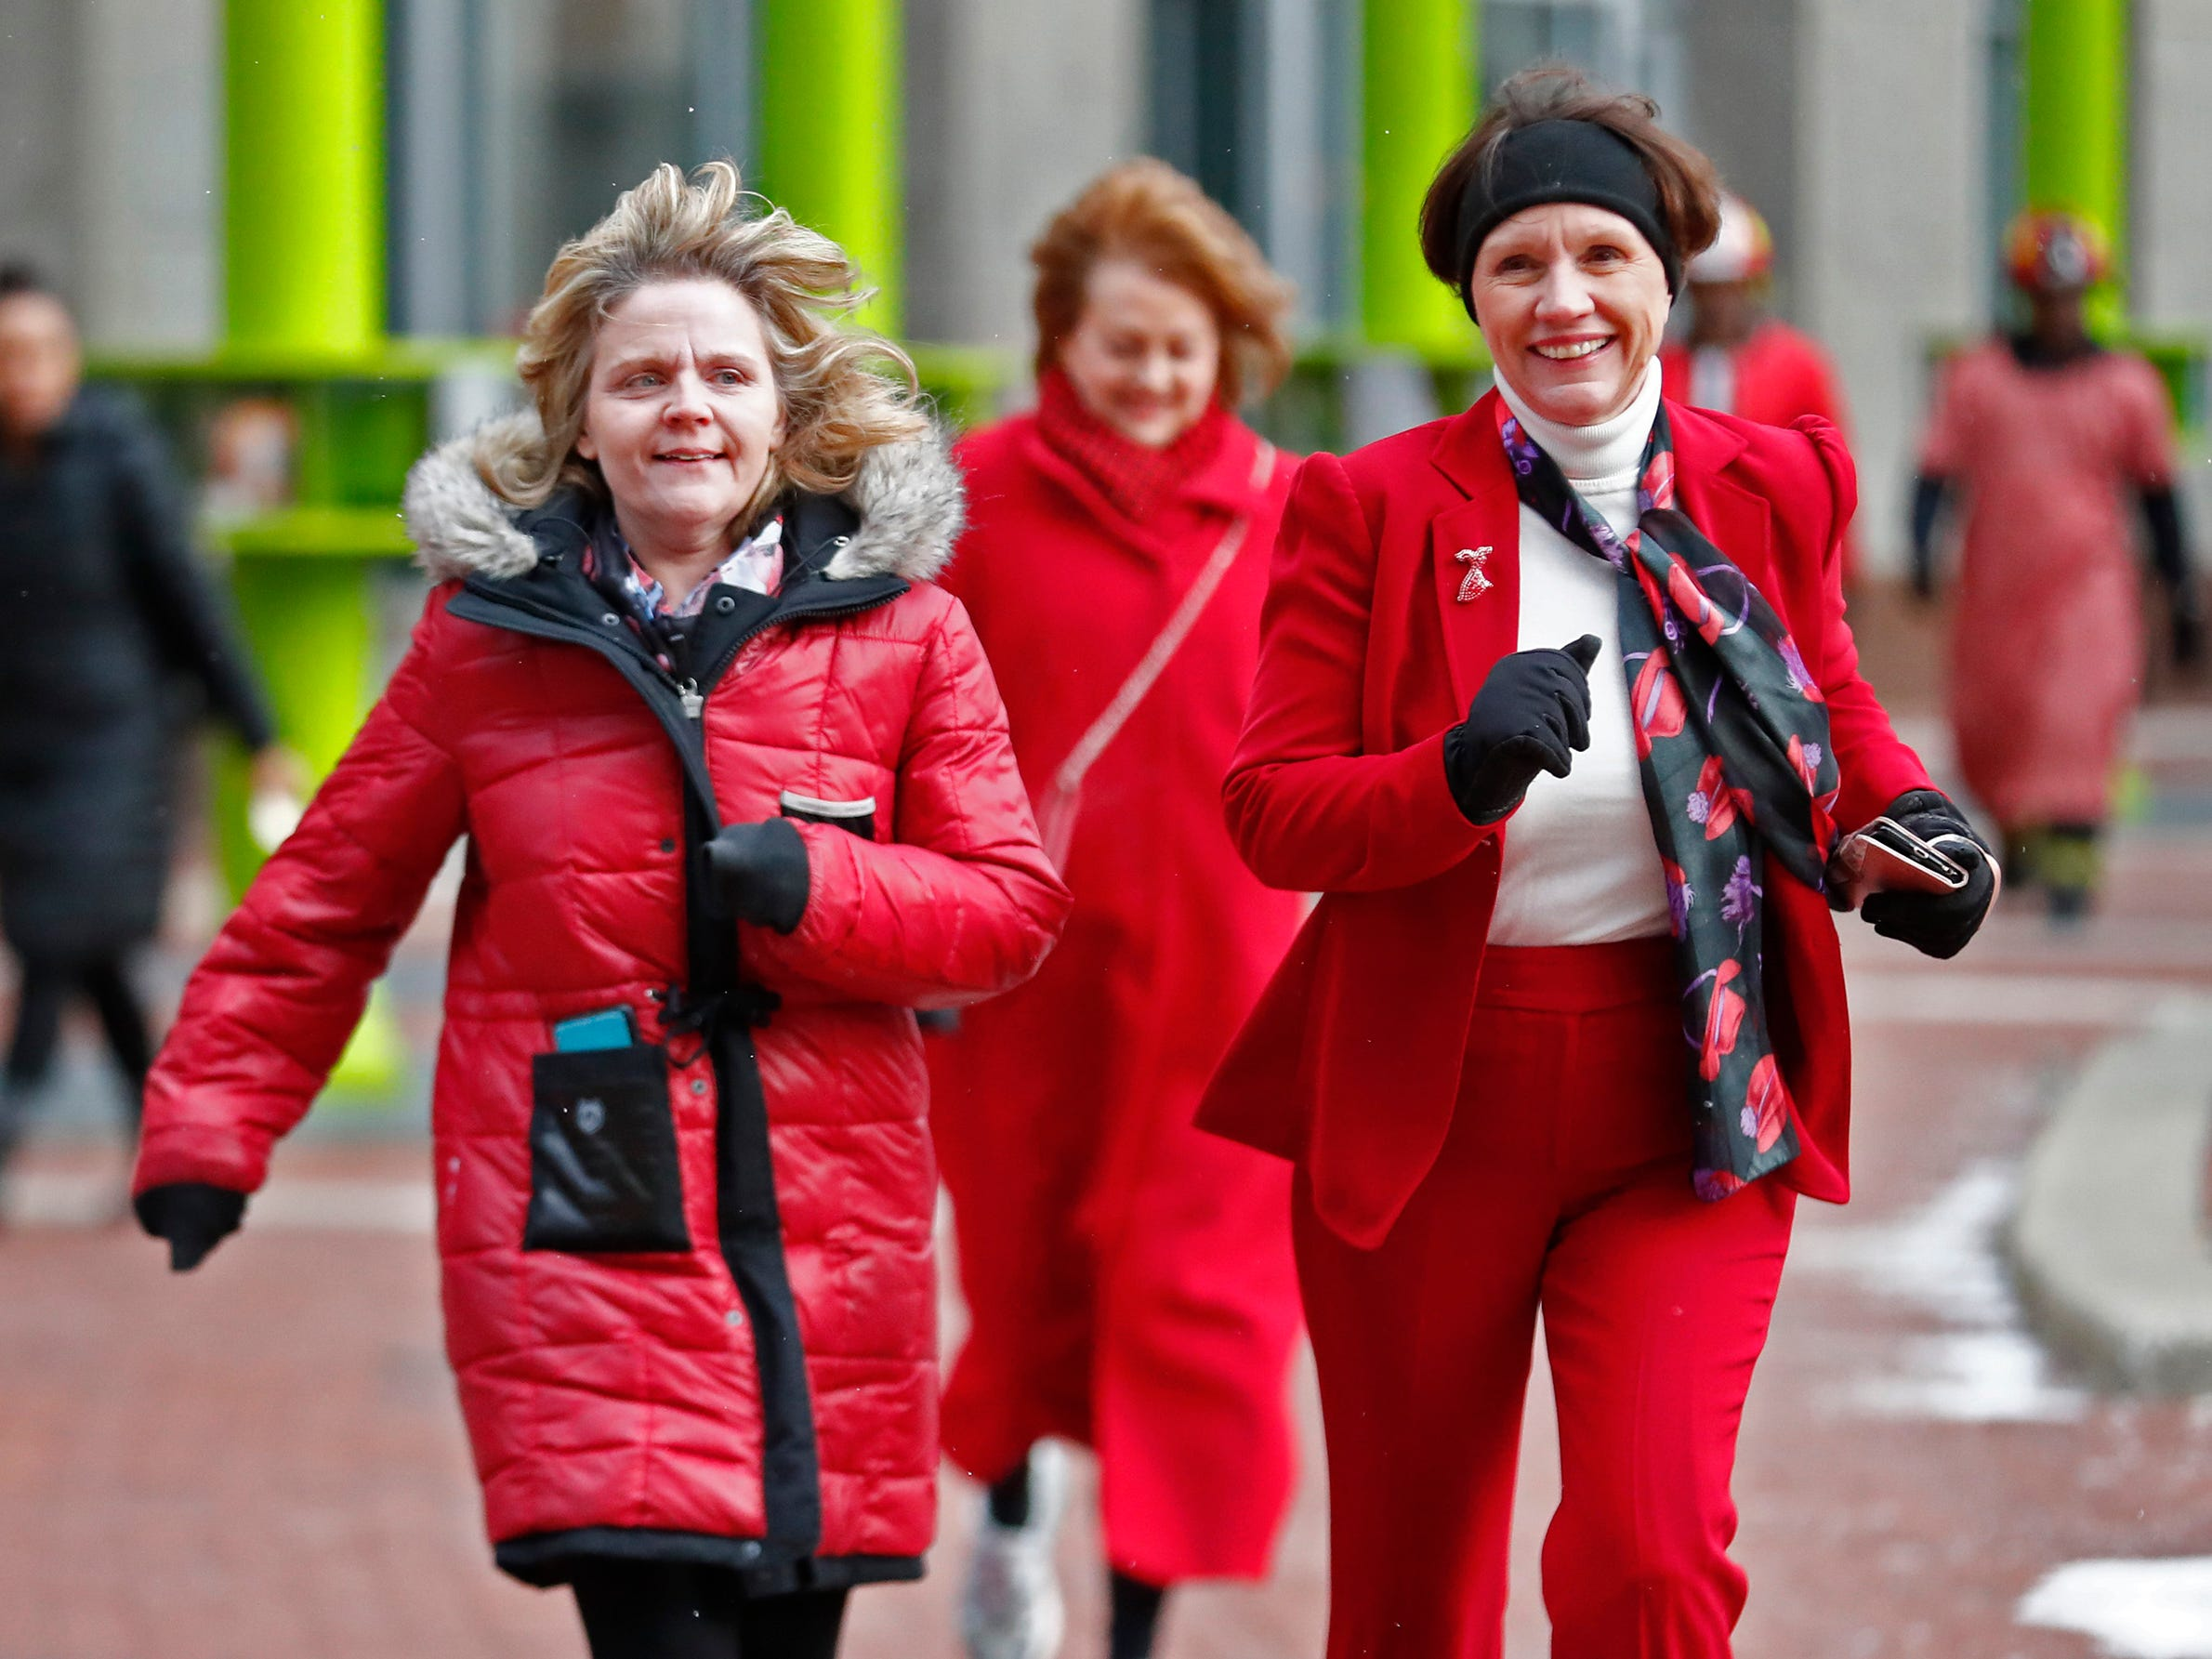 Angie Dyskey Christie Artuso, with the Richard Roudebush Medical Center, join a sea of red as they dash around Monument Circle for the Red Dress Dash, Friday, Feb. 8, 2019.  The American Heart Association put on the seventh annual event to support women's heart health.  The event raises awareness for the American Heart Association's Go Red For Women movement.  Heart disease is the leading cause of death among women.